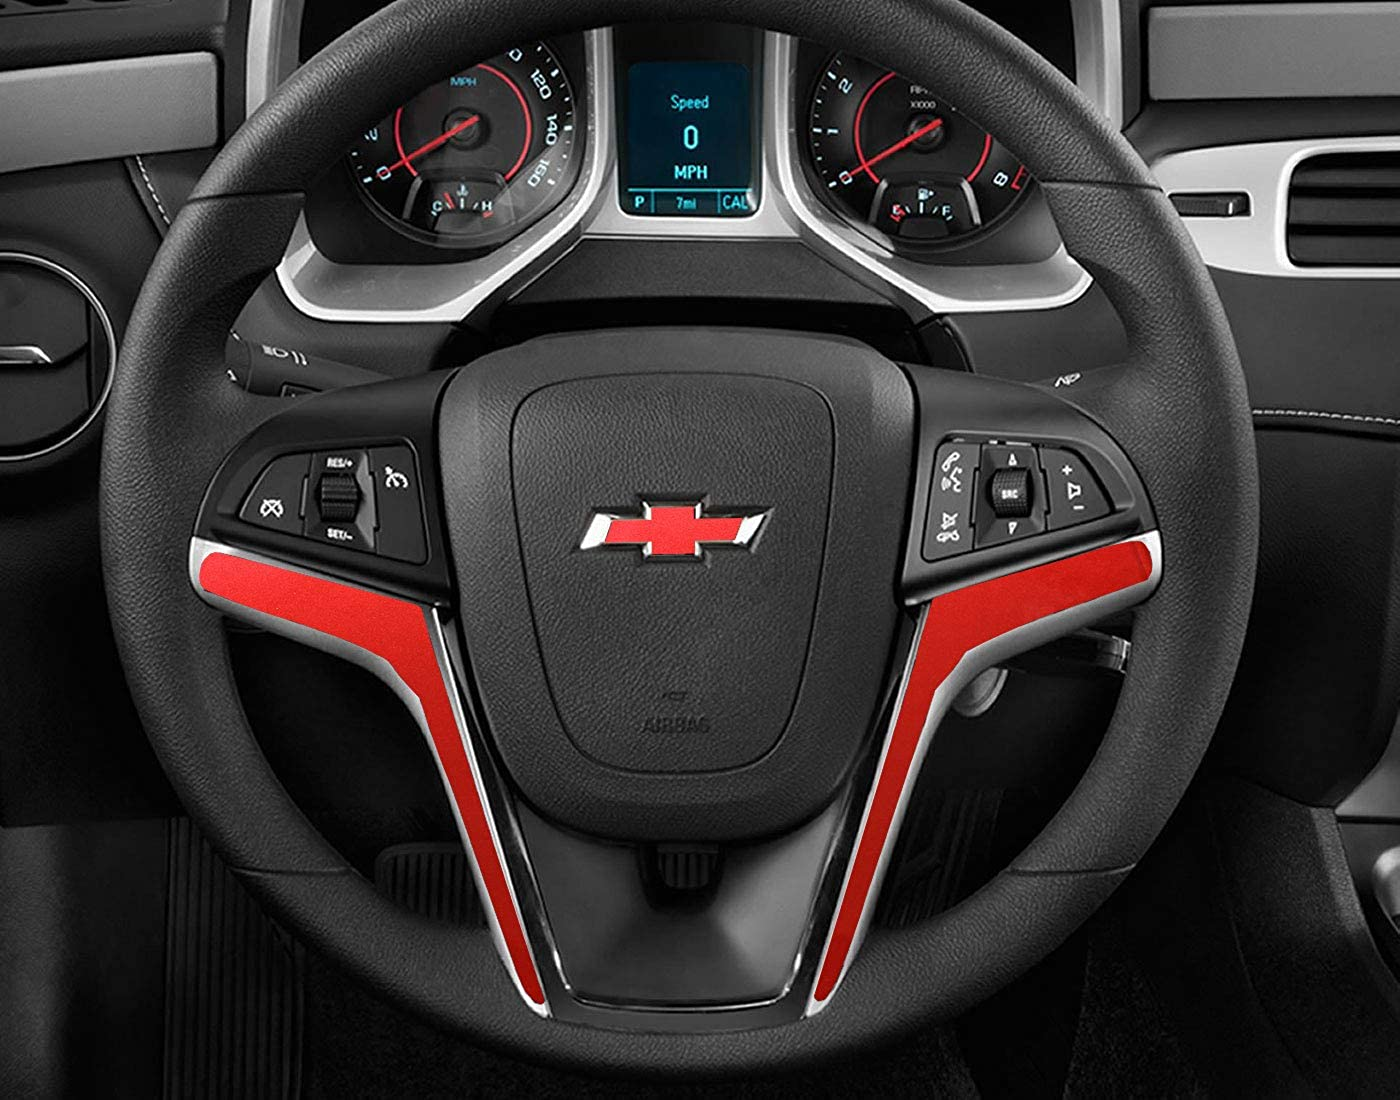 IPG for 2012-2015 Camaro Carbon Fiber Steering Wheel Accent Decal Cove Chevy Wrap Skin Do it Yourself kit 2 Units Set